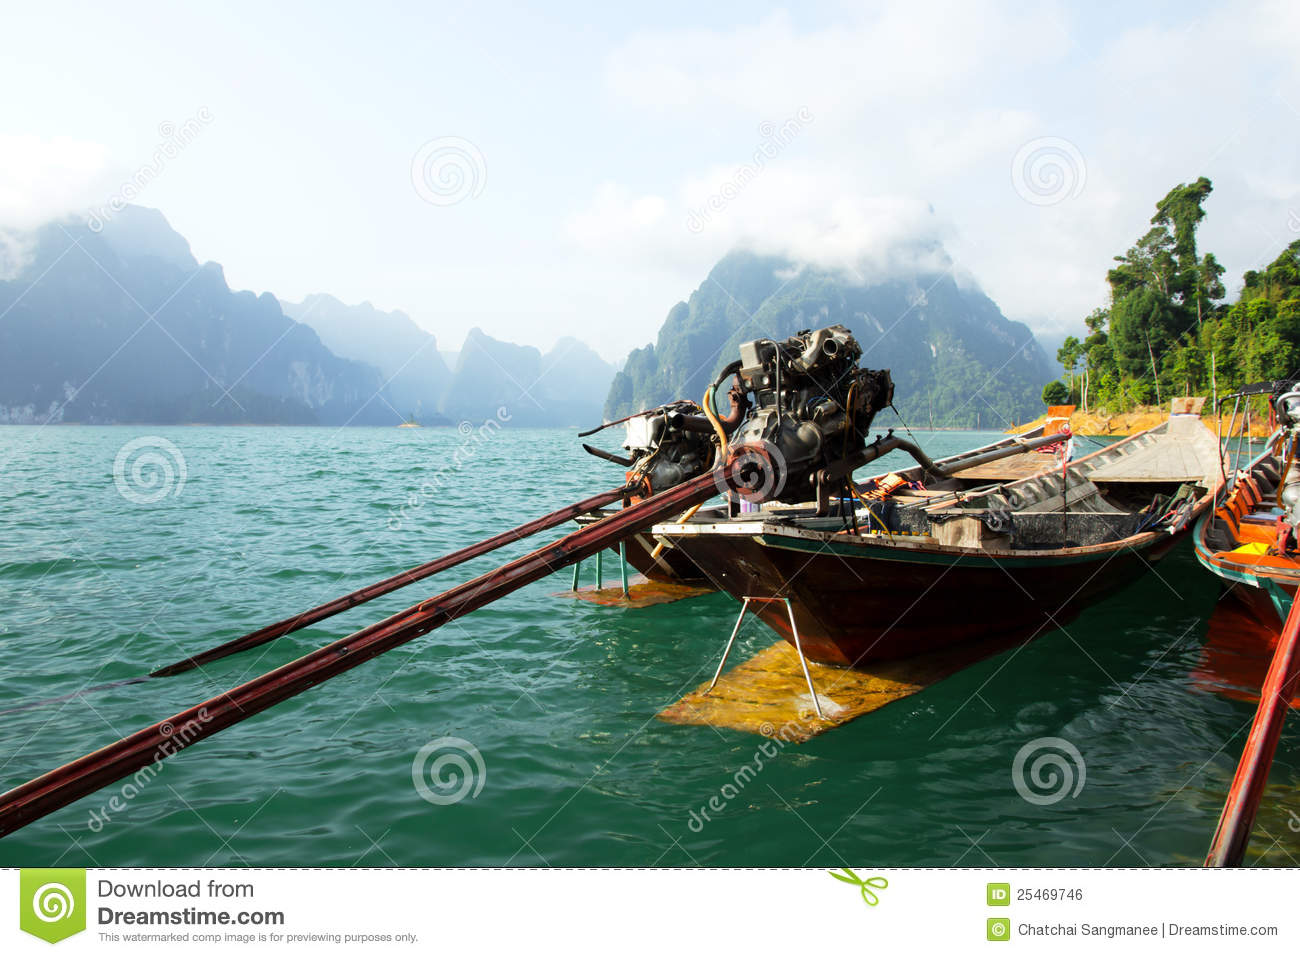 Engine Of Longtail Boat Royalty Free Stock Image - Image ...